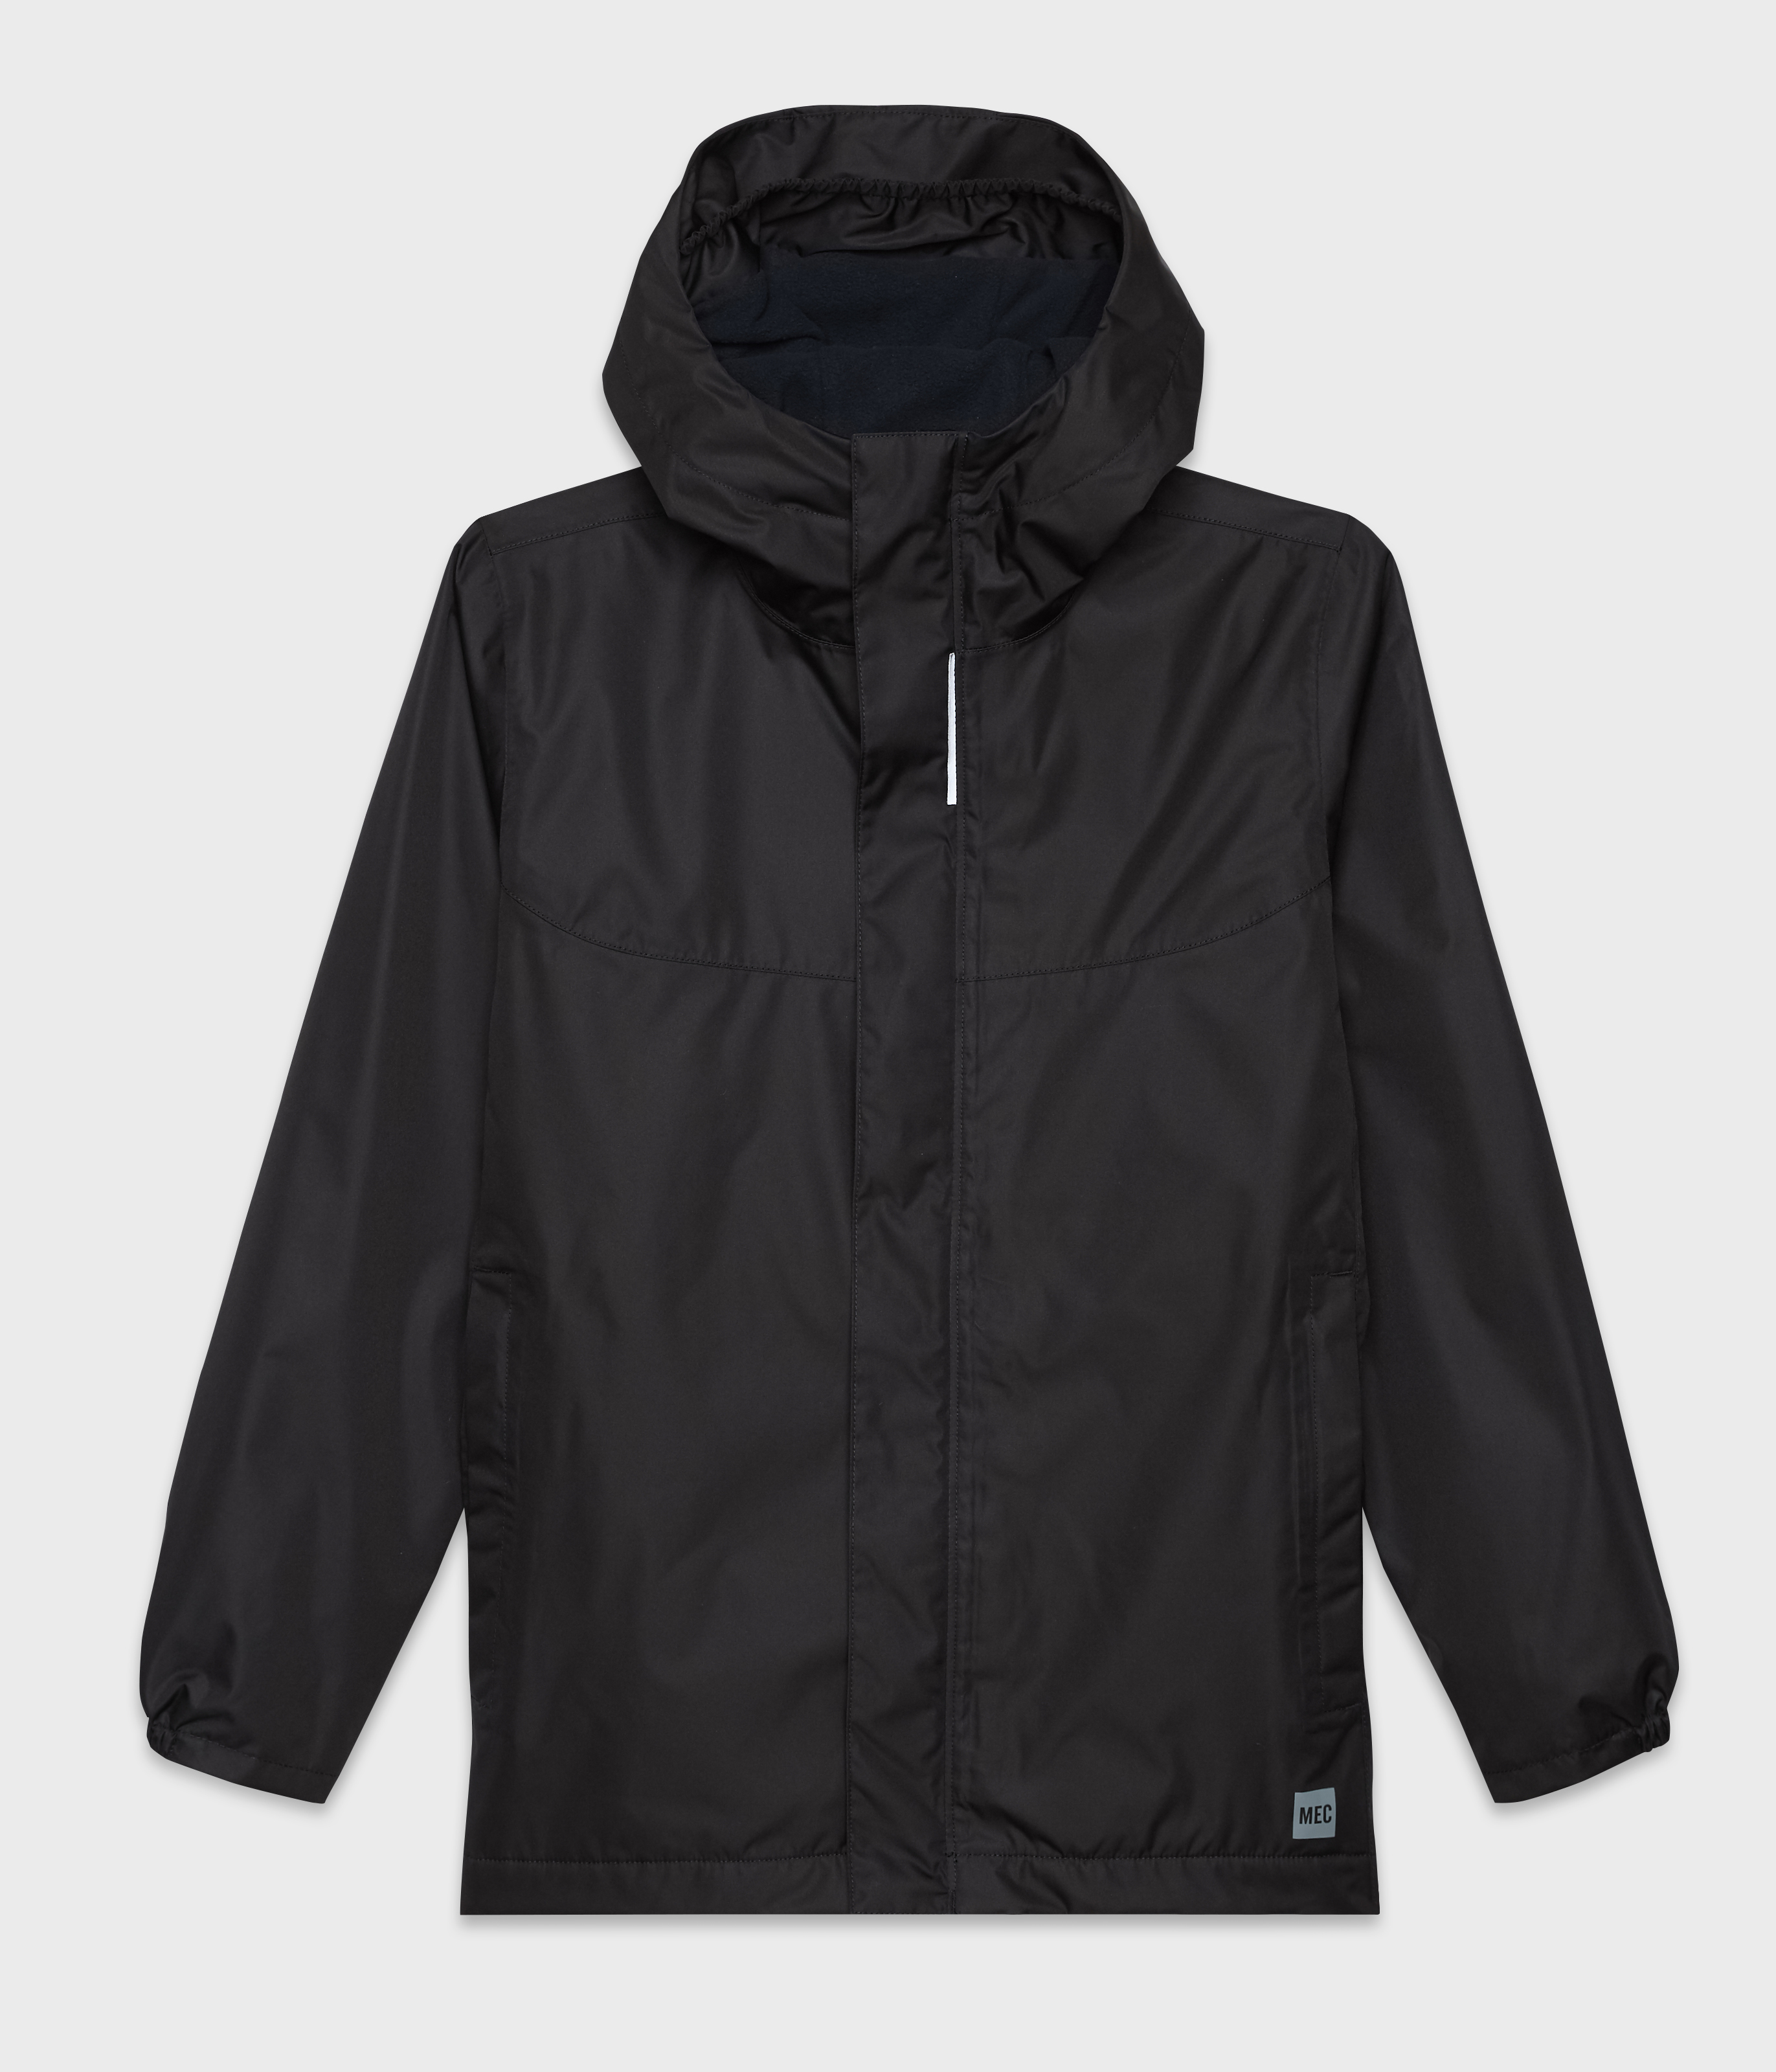 95745ff7f Youth rain jackets | MEC